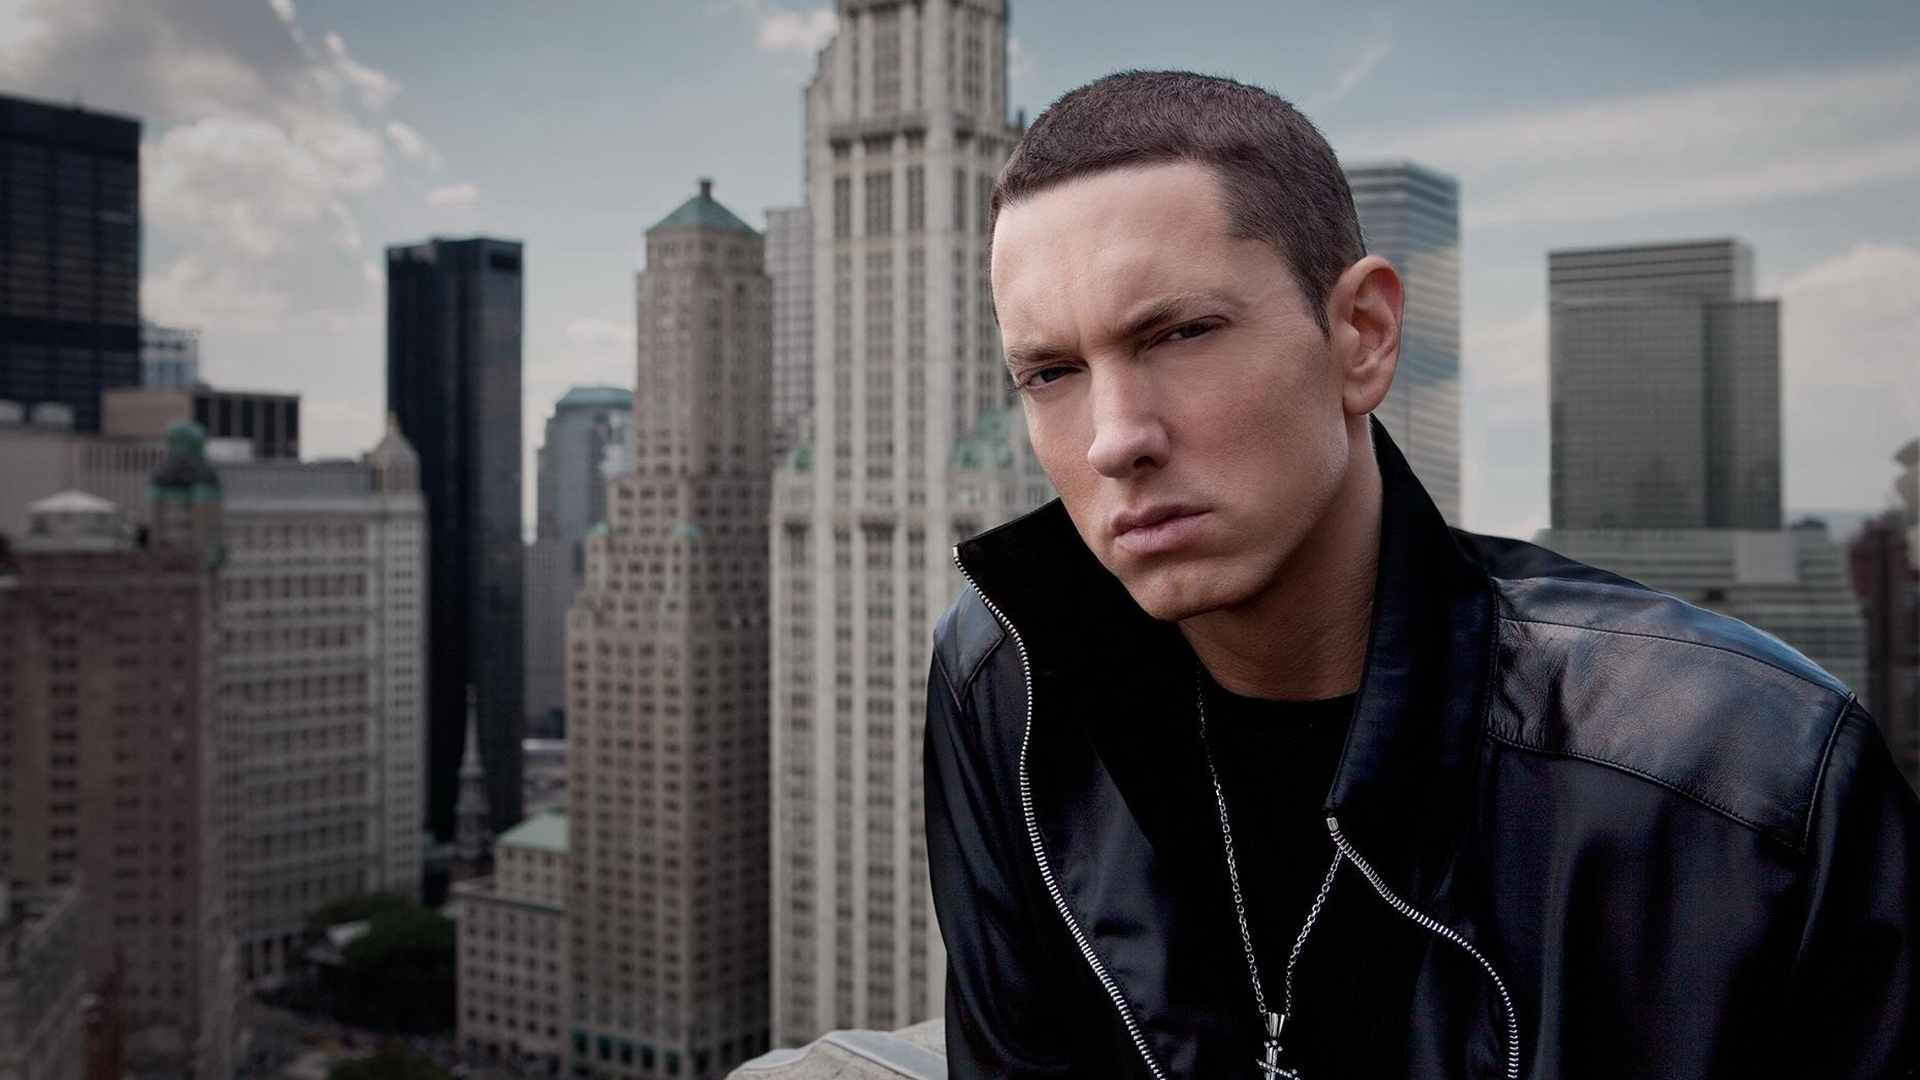 Eminem Close Look for 1920 x 1080 HDTV 1080p resolution